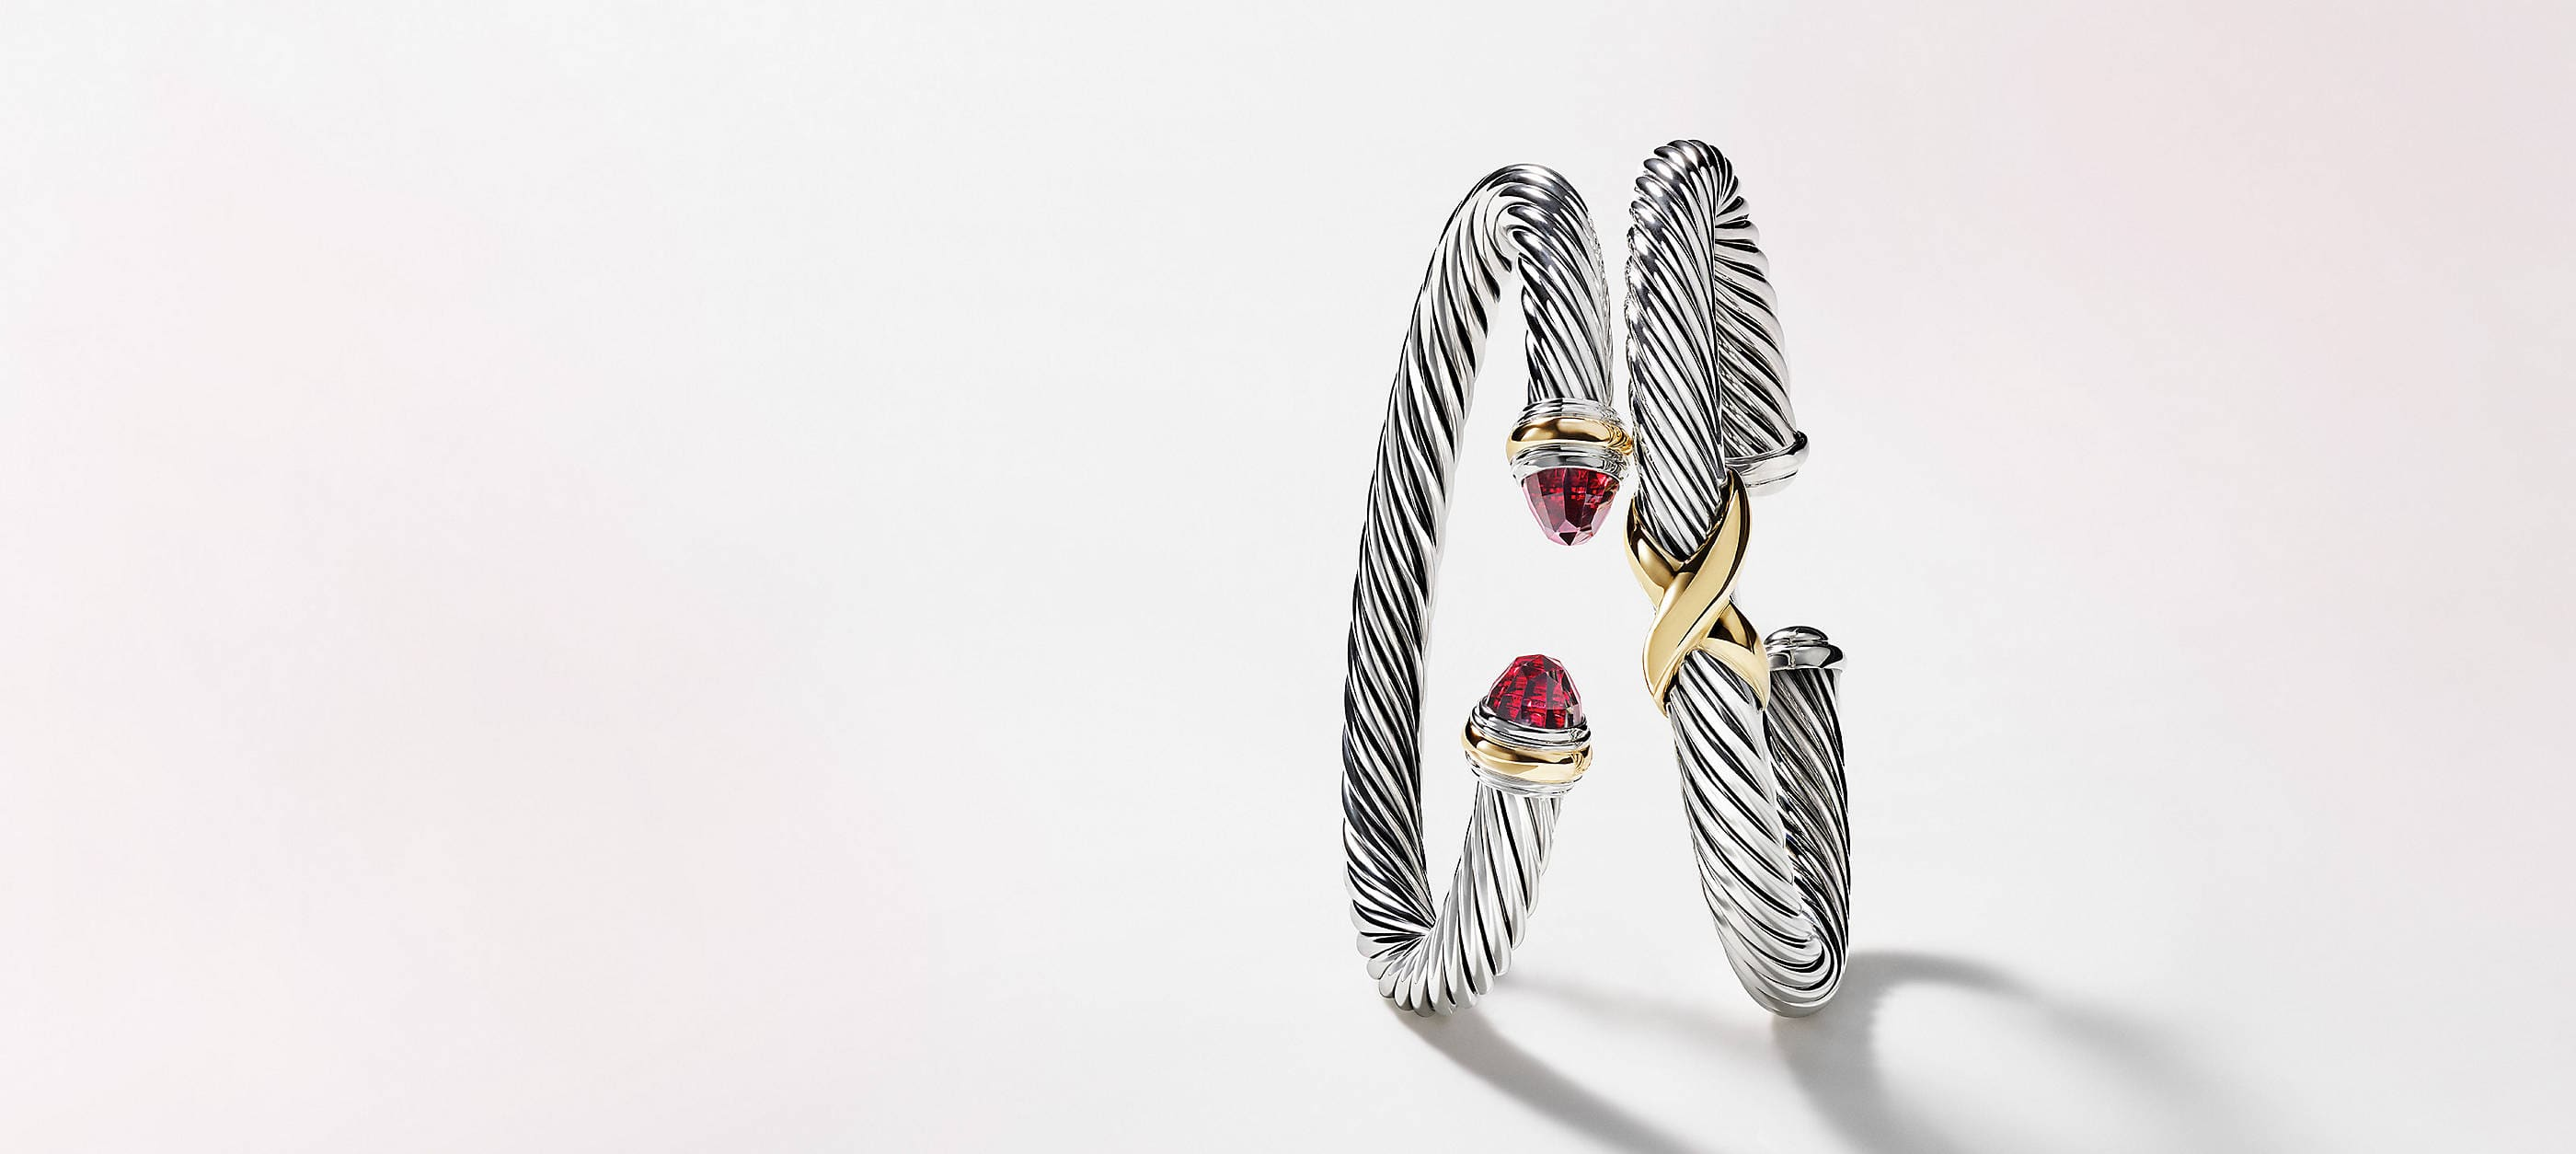 Two David Yurman Cable bracelets balancing against each other in front of a white background. The women's jewelry is crafted from sterling silver with 14K yellow gold accents.